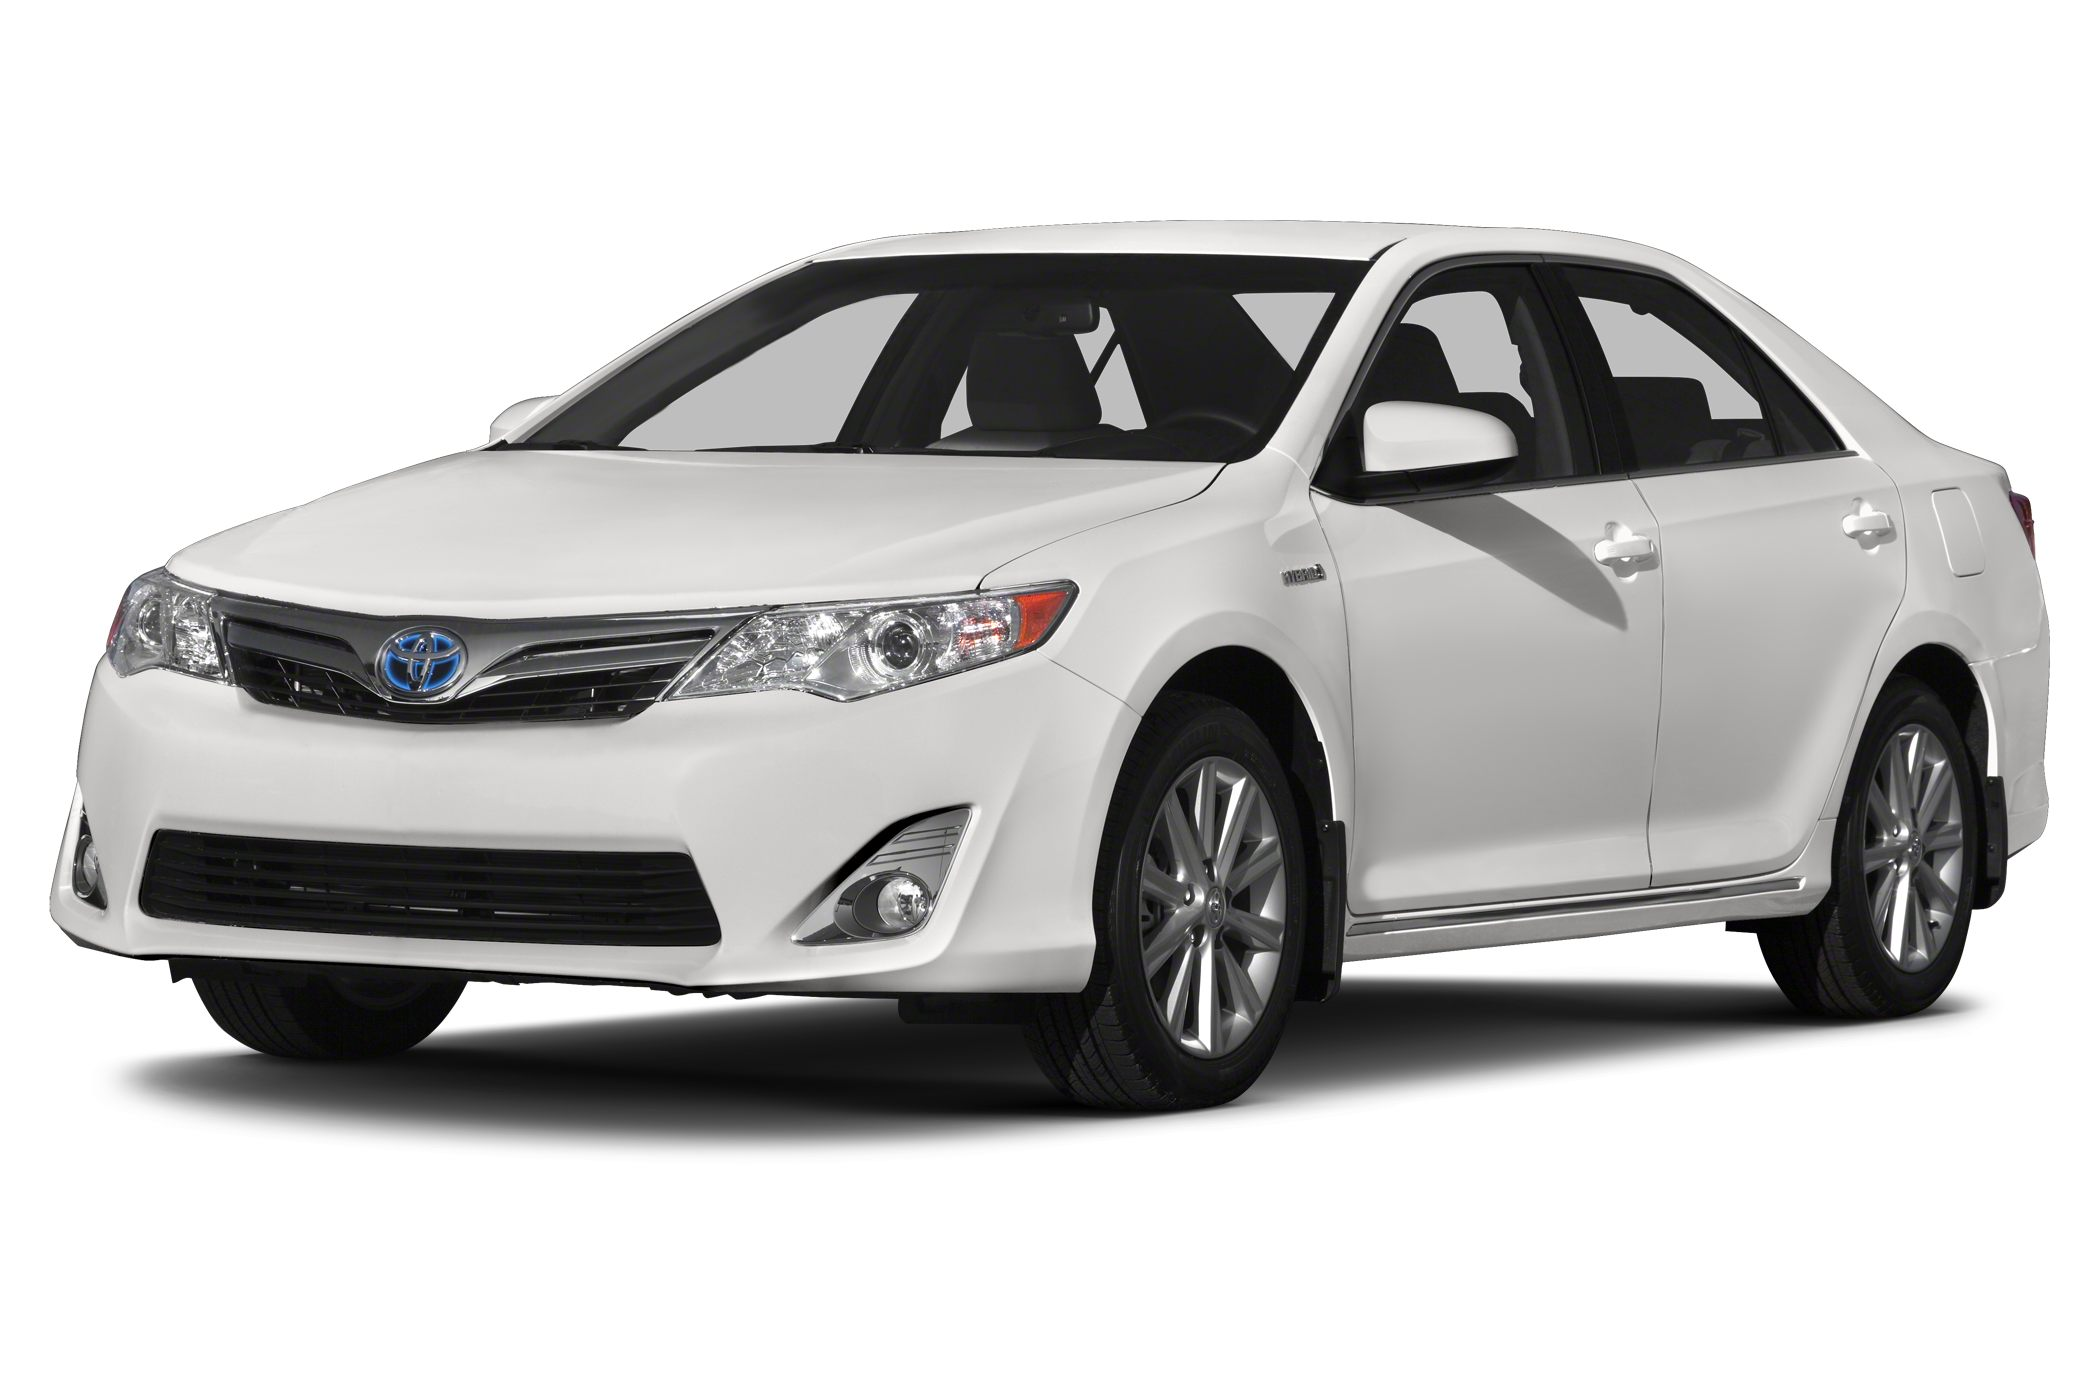 2014 Toyota Camry Hybrid XLE CARFAX 1-Owner GREAT MILES 5316 EPA 38 MPG Hwy40 MPG City NAV S